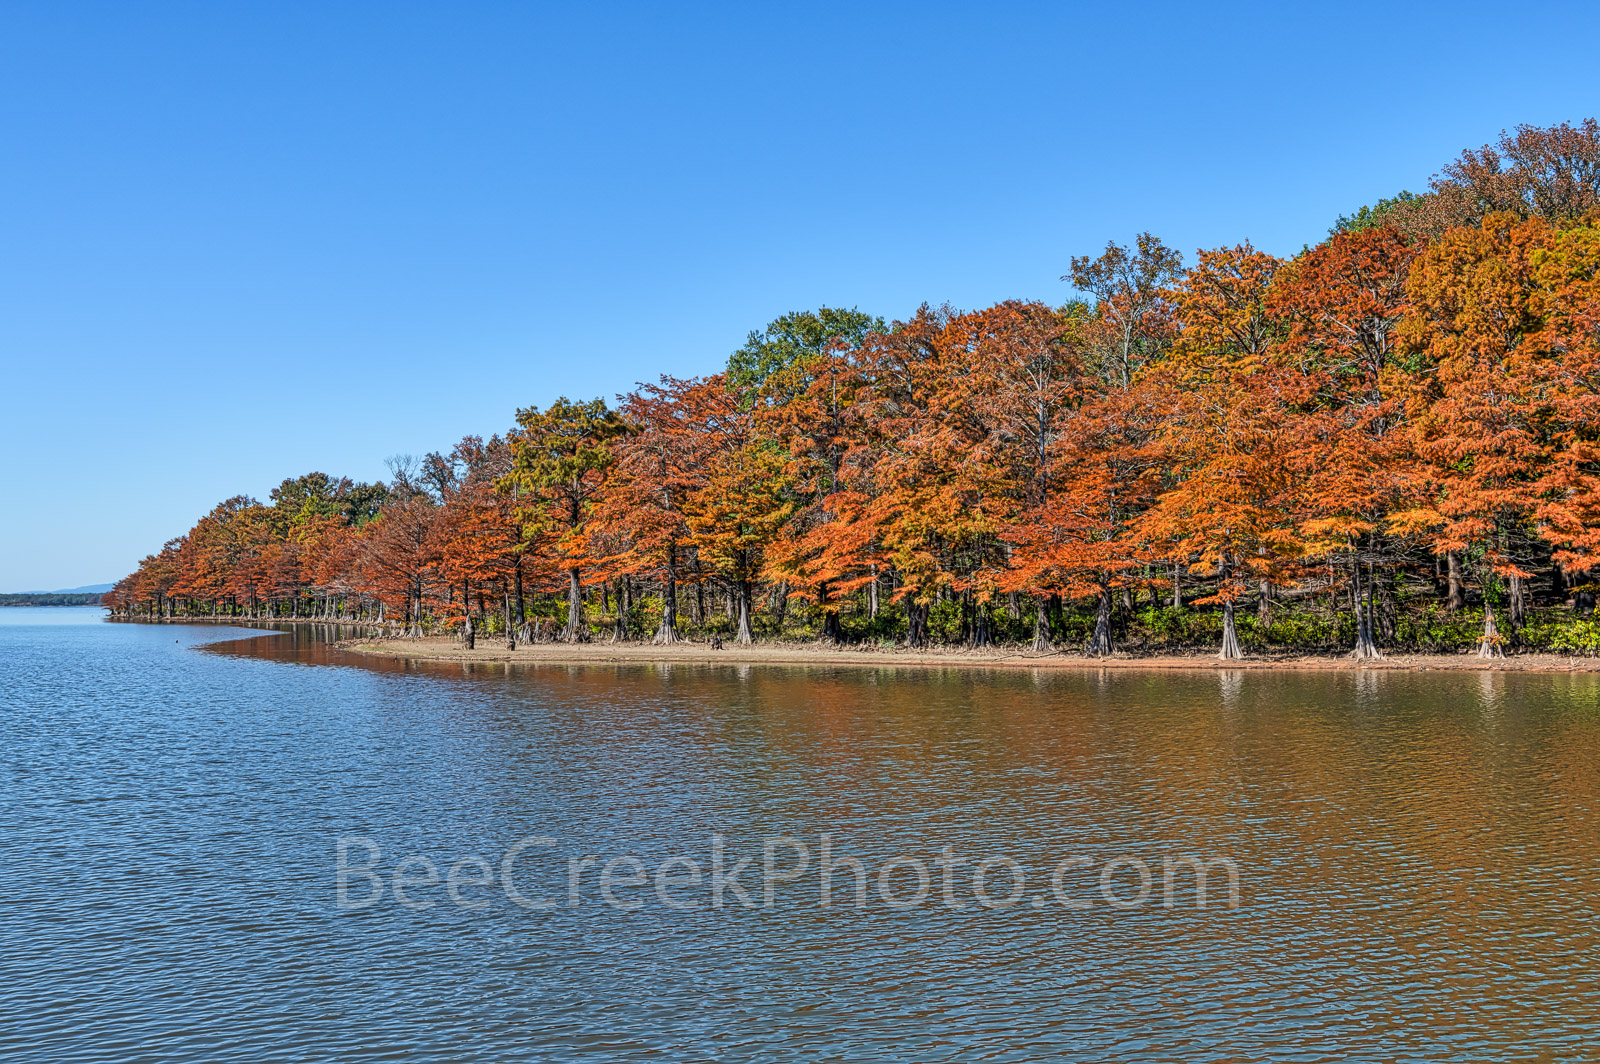 cypress, colorful, fall, fall colors, colorful, trees, autumn, rusty, orange, reds, banks, scene, scenery, wilderness, blue sky, forest, Lake Nimrod, arkansas, blue sky, cypress stumps, fall foliage, , photo